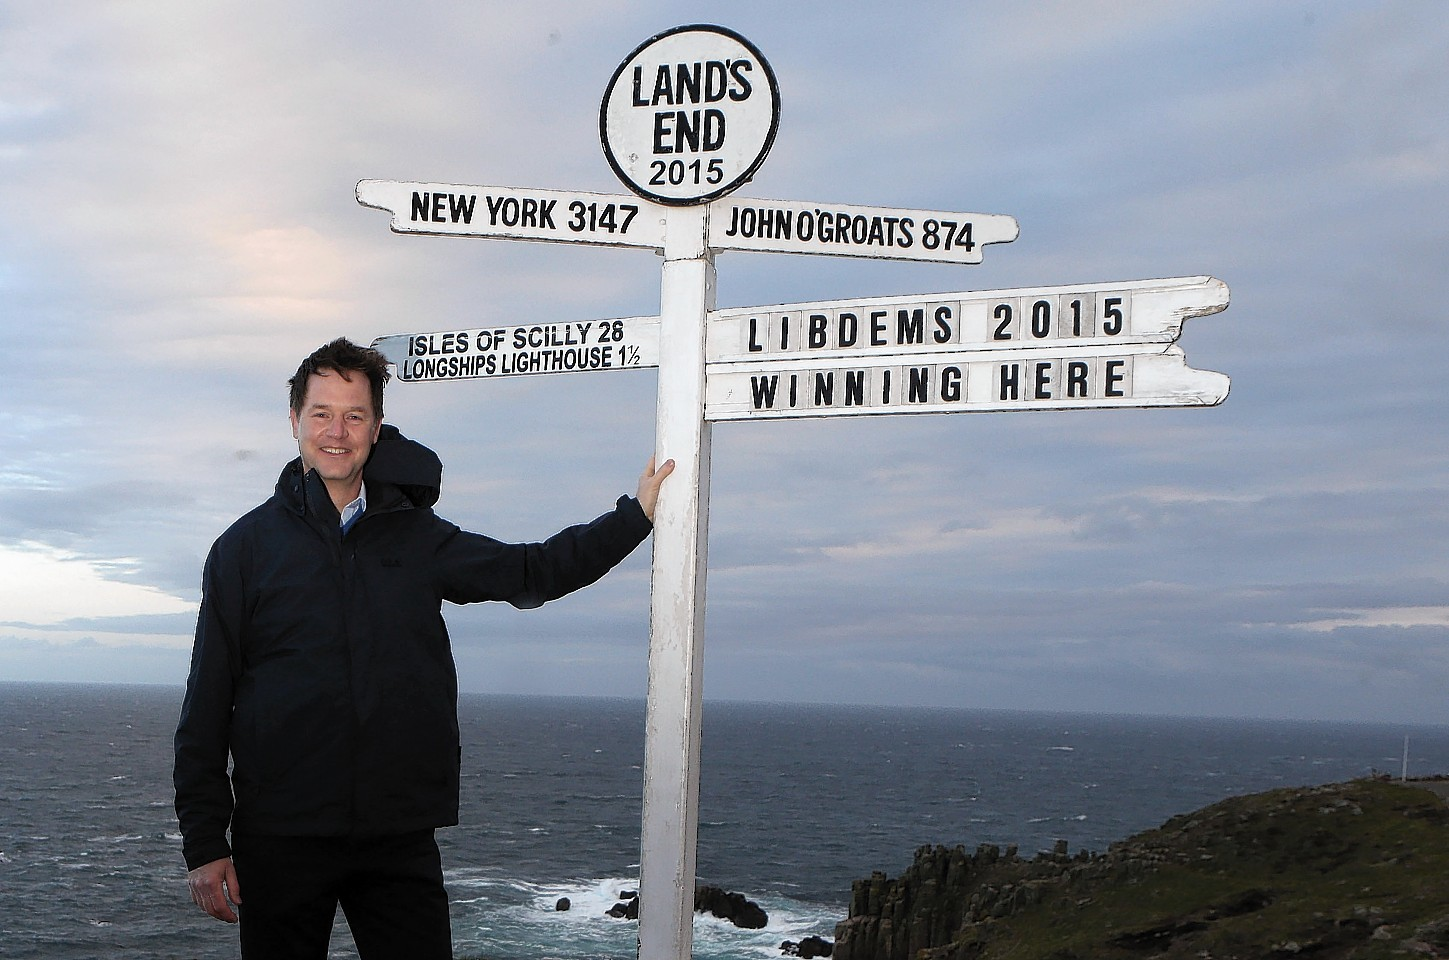 Liberal Democrats Party leader Nick Clegg at Land's End in Cornwall, as he embarks on a Land's End to John O'Groats campaign marathon in a last ditch effort to save as many Liberal Democrat seats as possible at the General Election